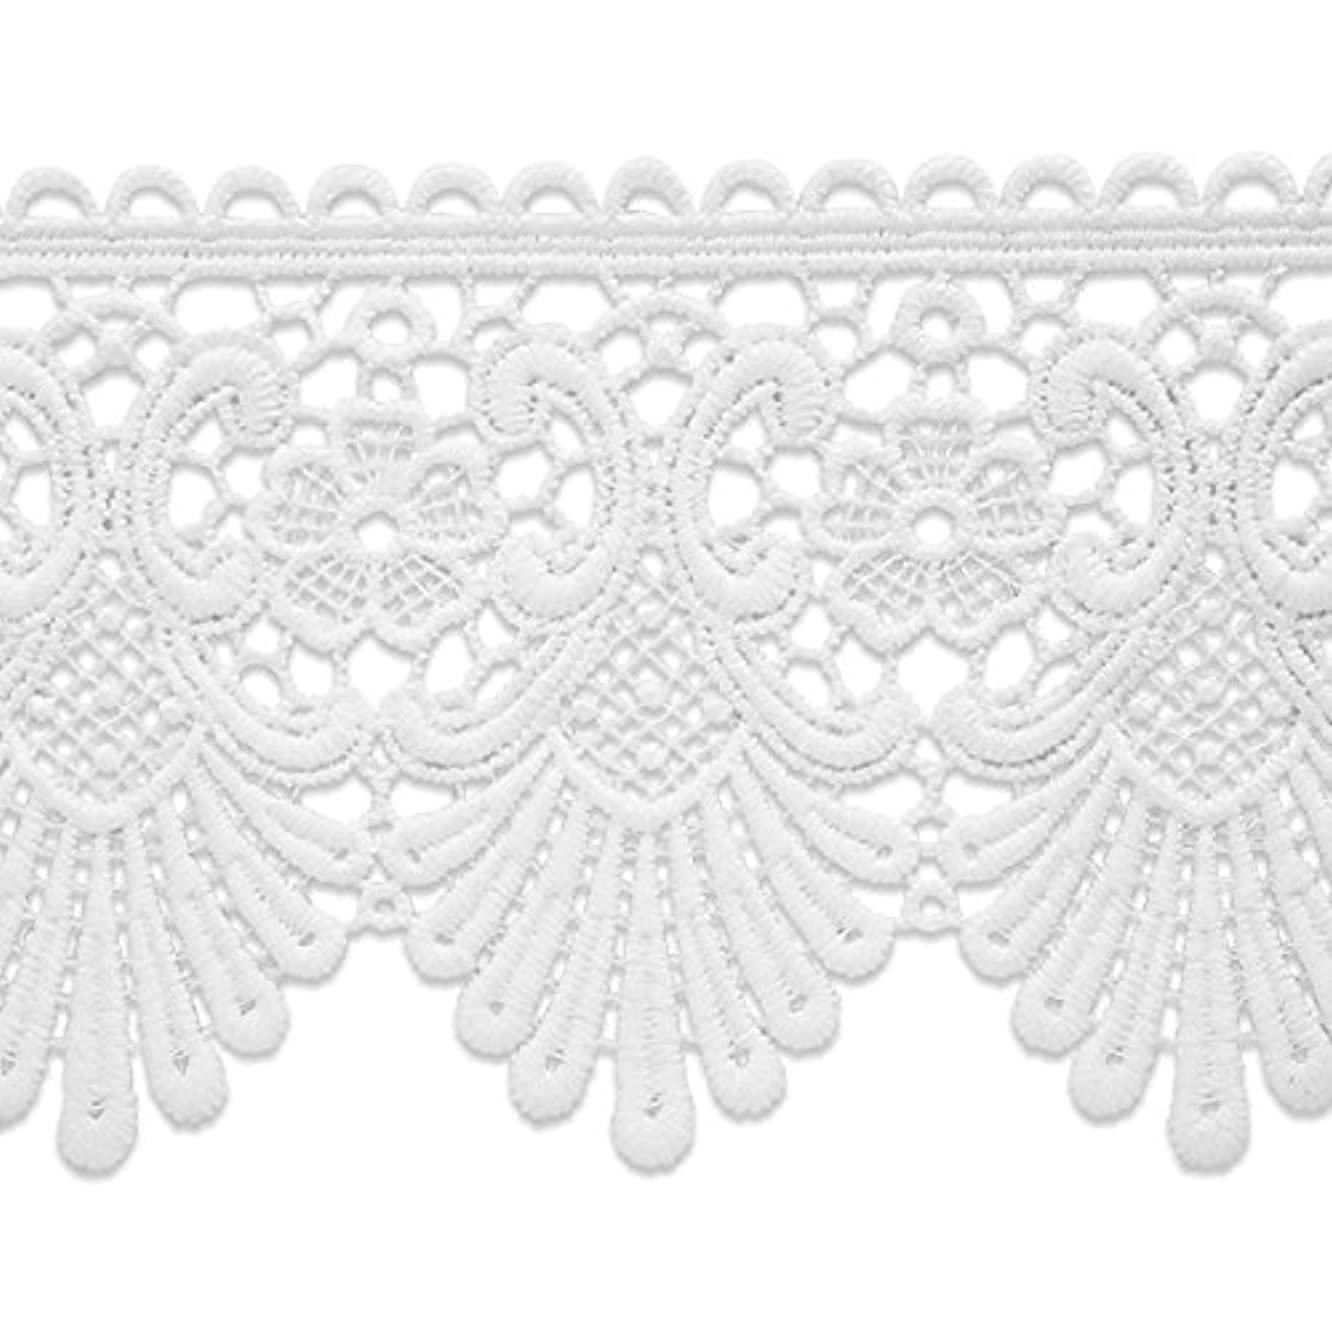 Expo IR8069WH-10 10 Yards of Swirl & Flower Lace Trim White